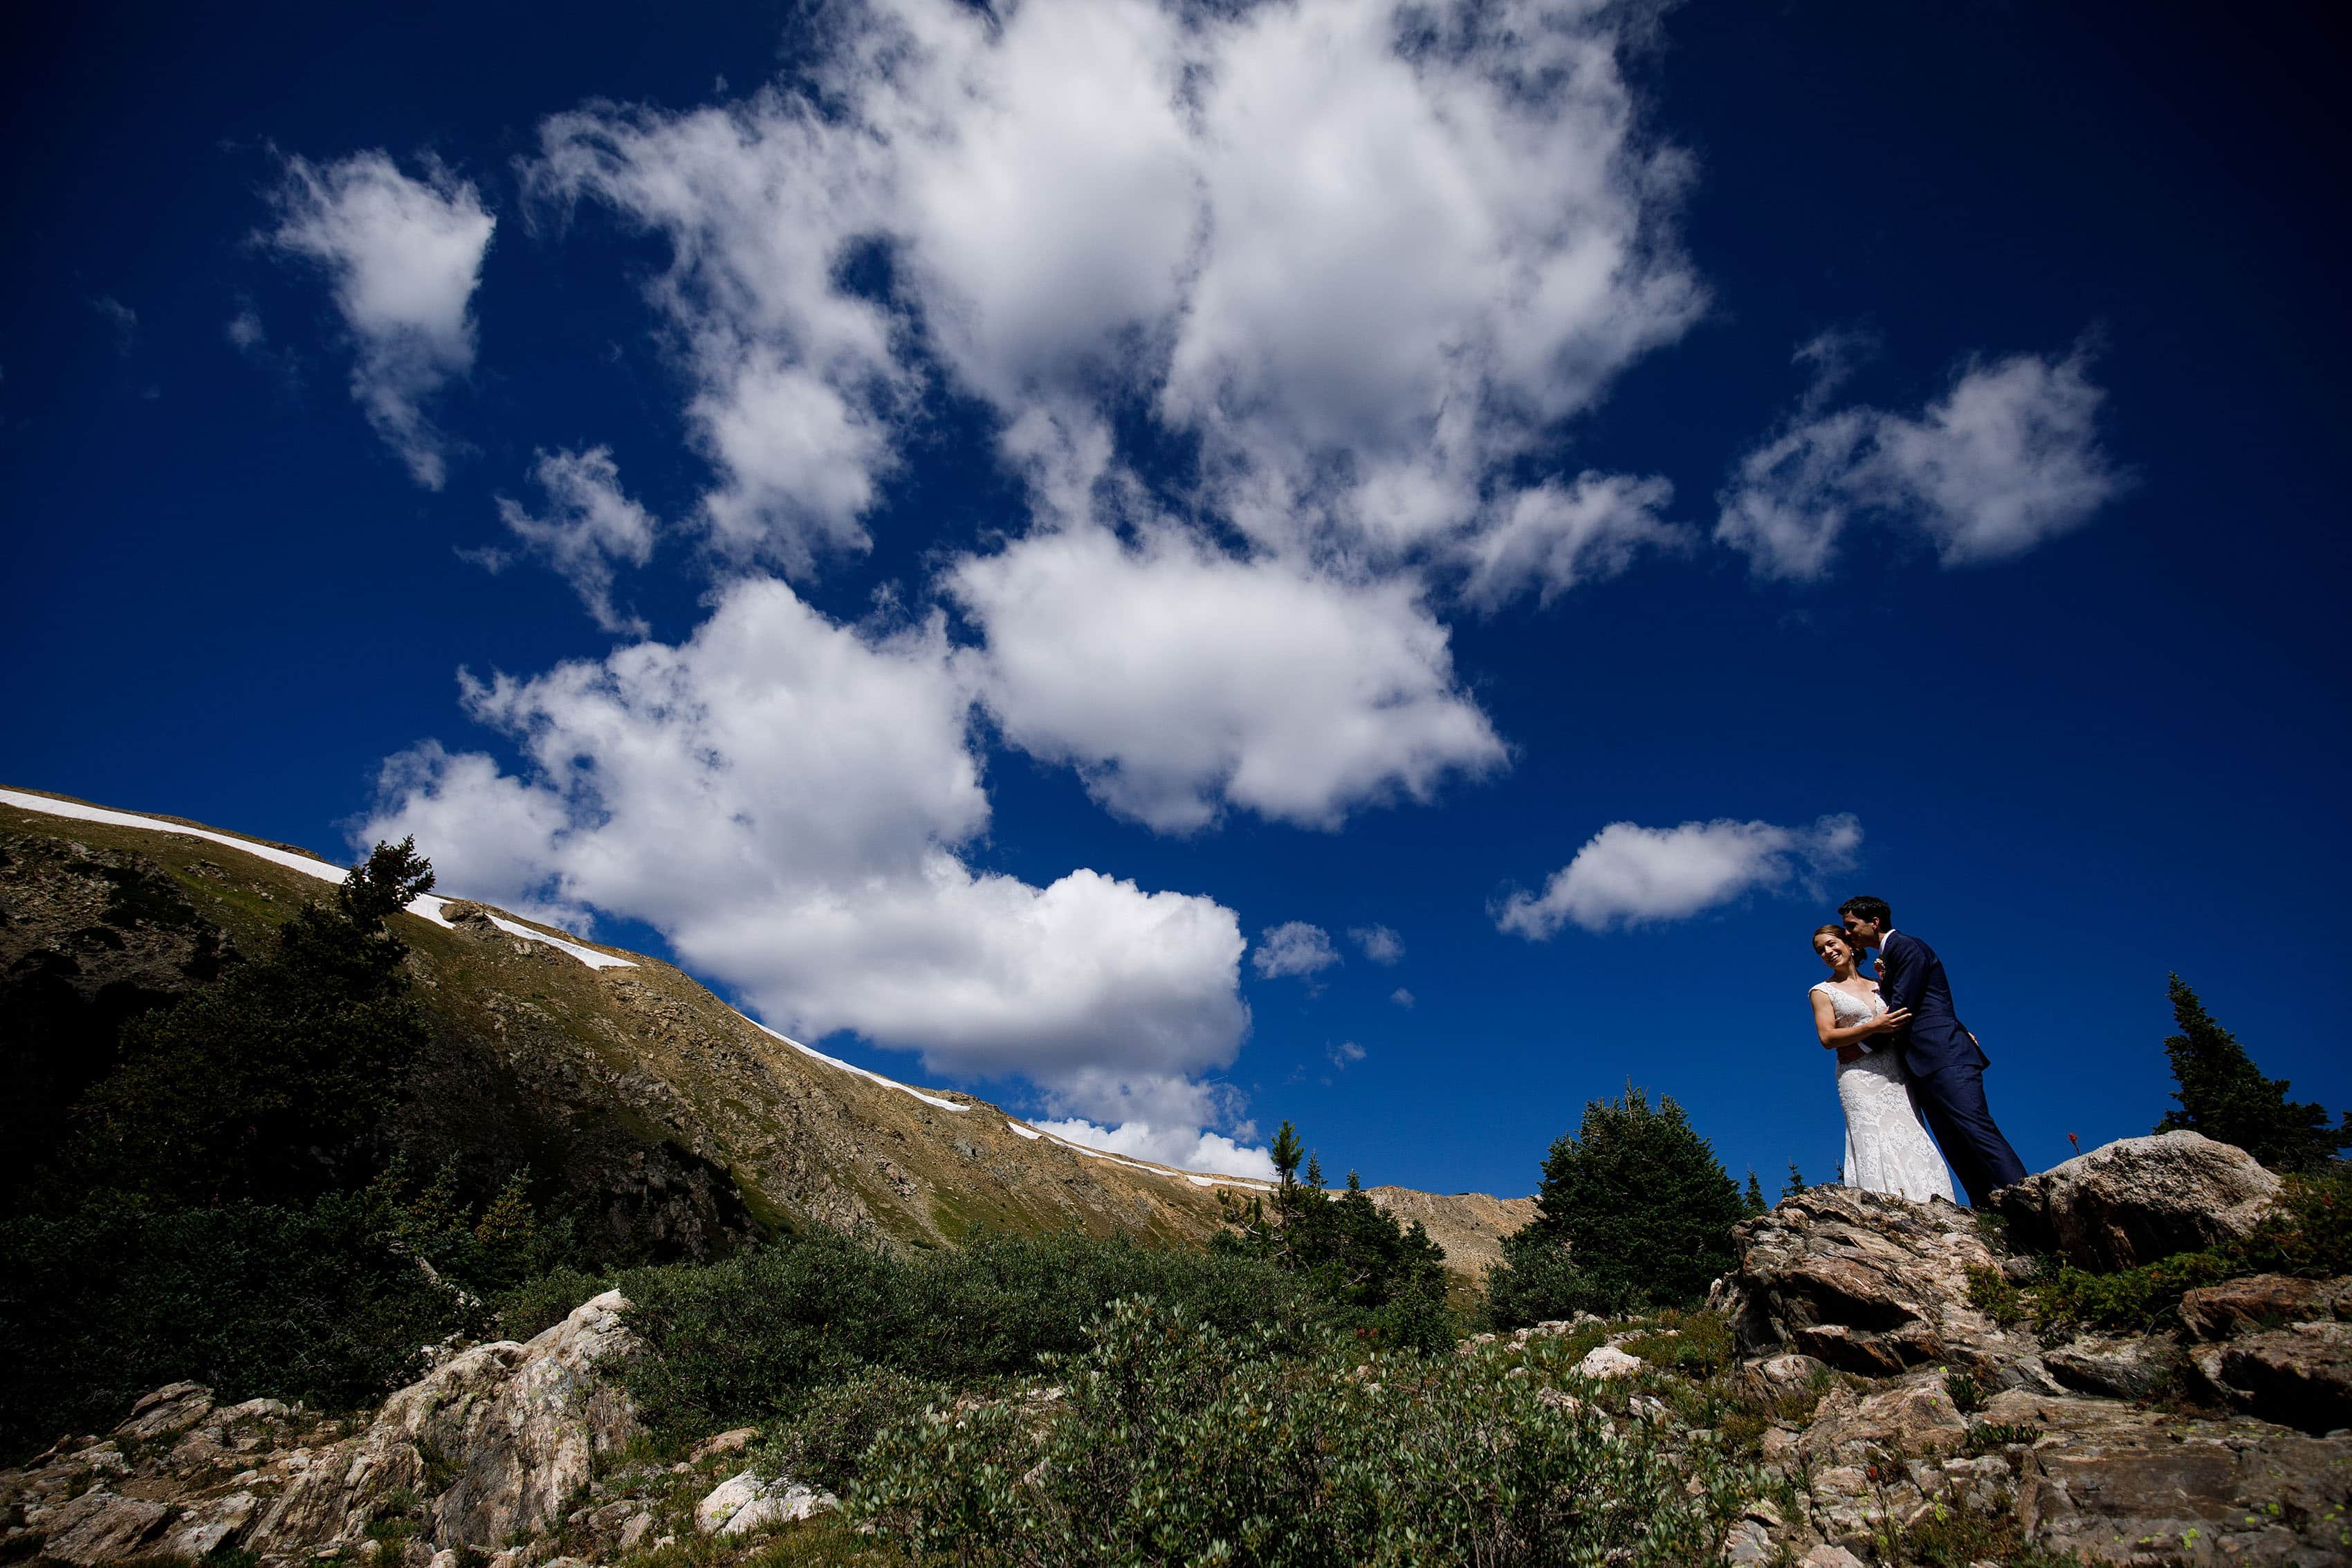 The couple embrace as clowds form above them at loveland pass